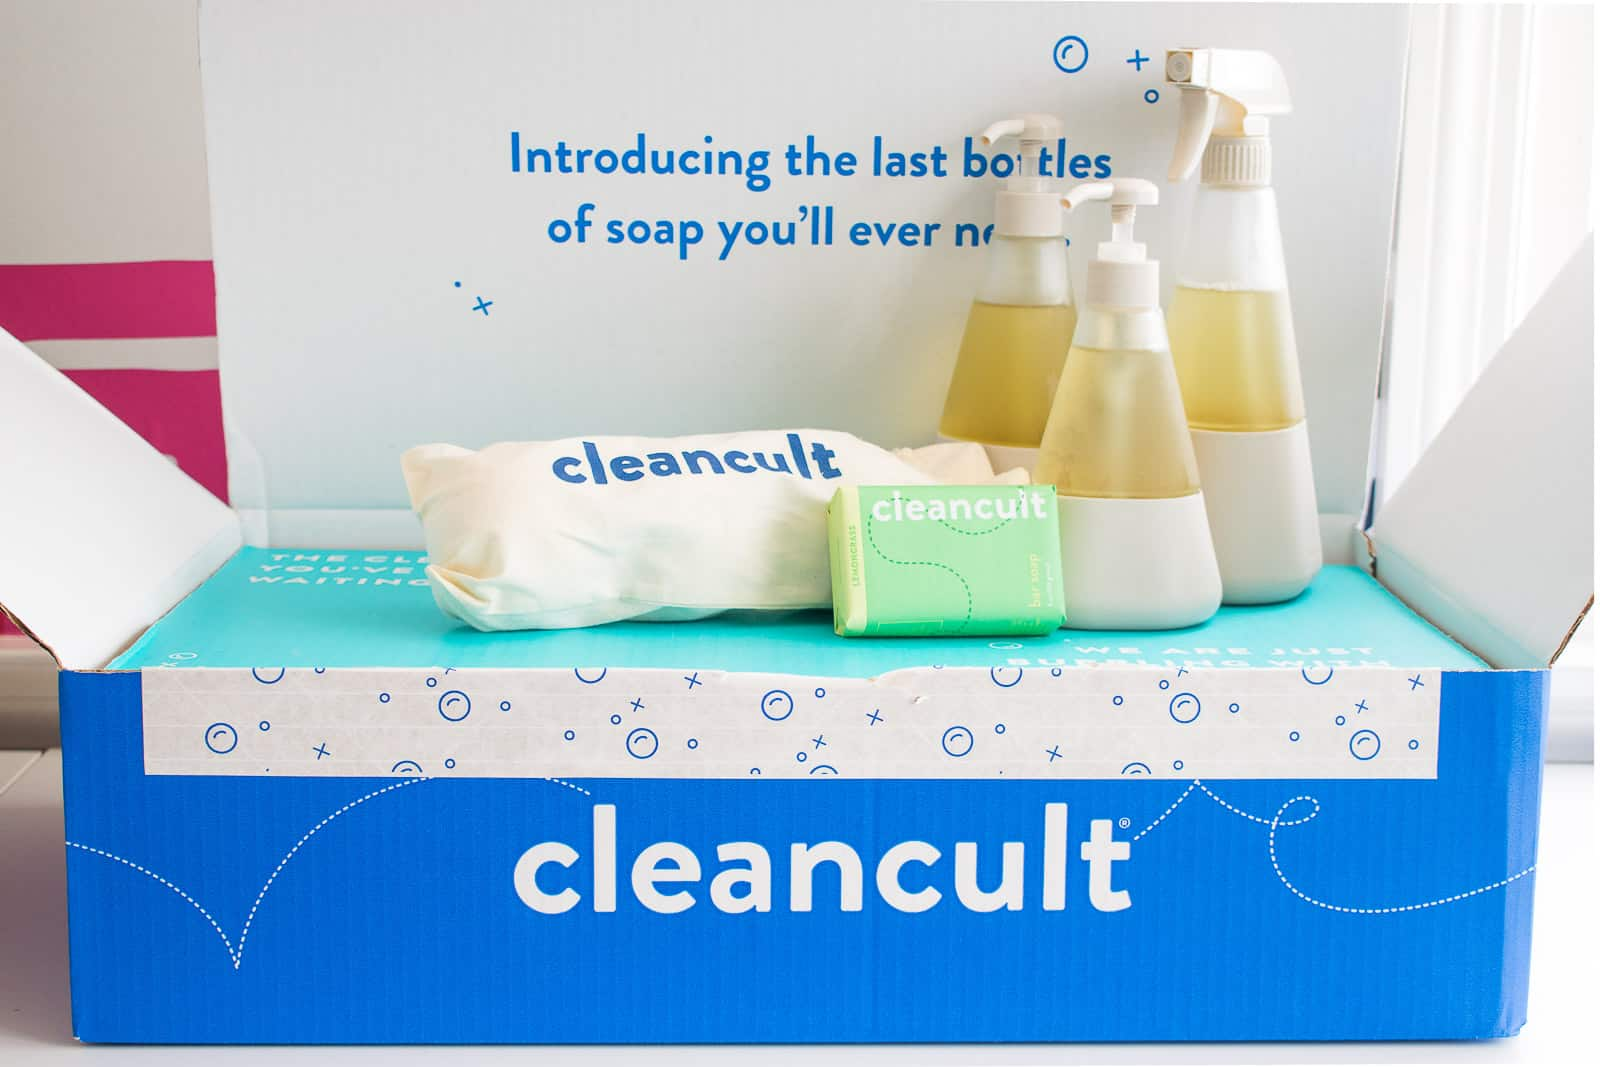 cleancult cleaning products